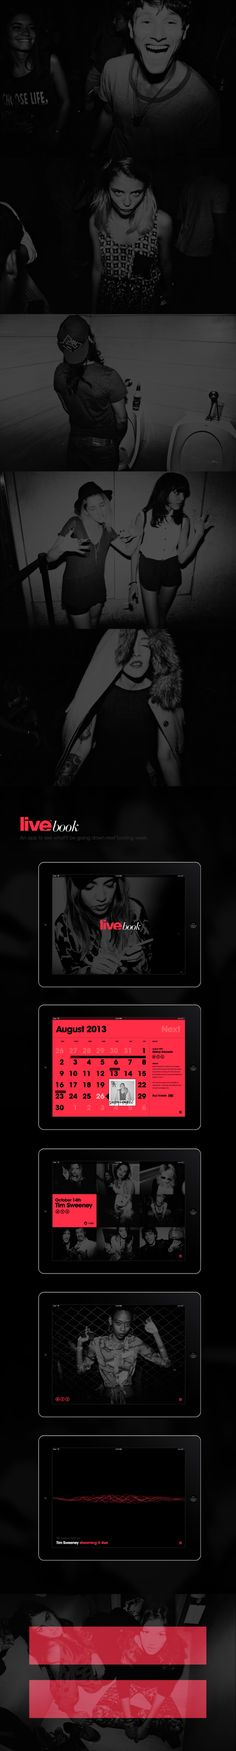 Live Club by ICK Studio | Living Brands™ , via Behance